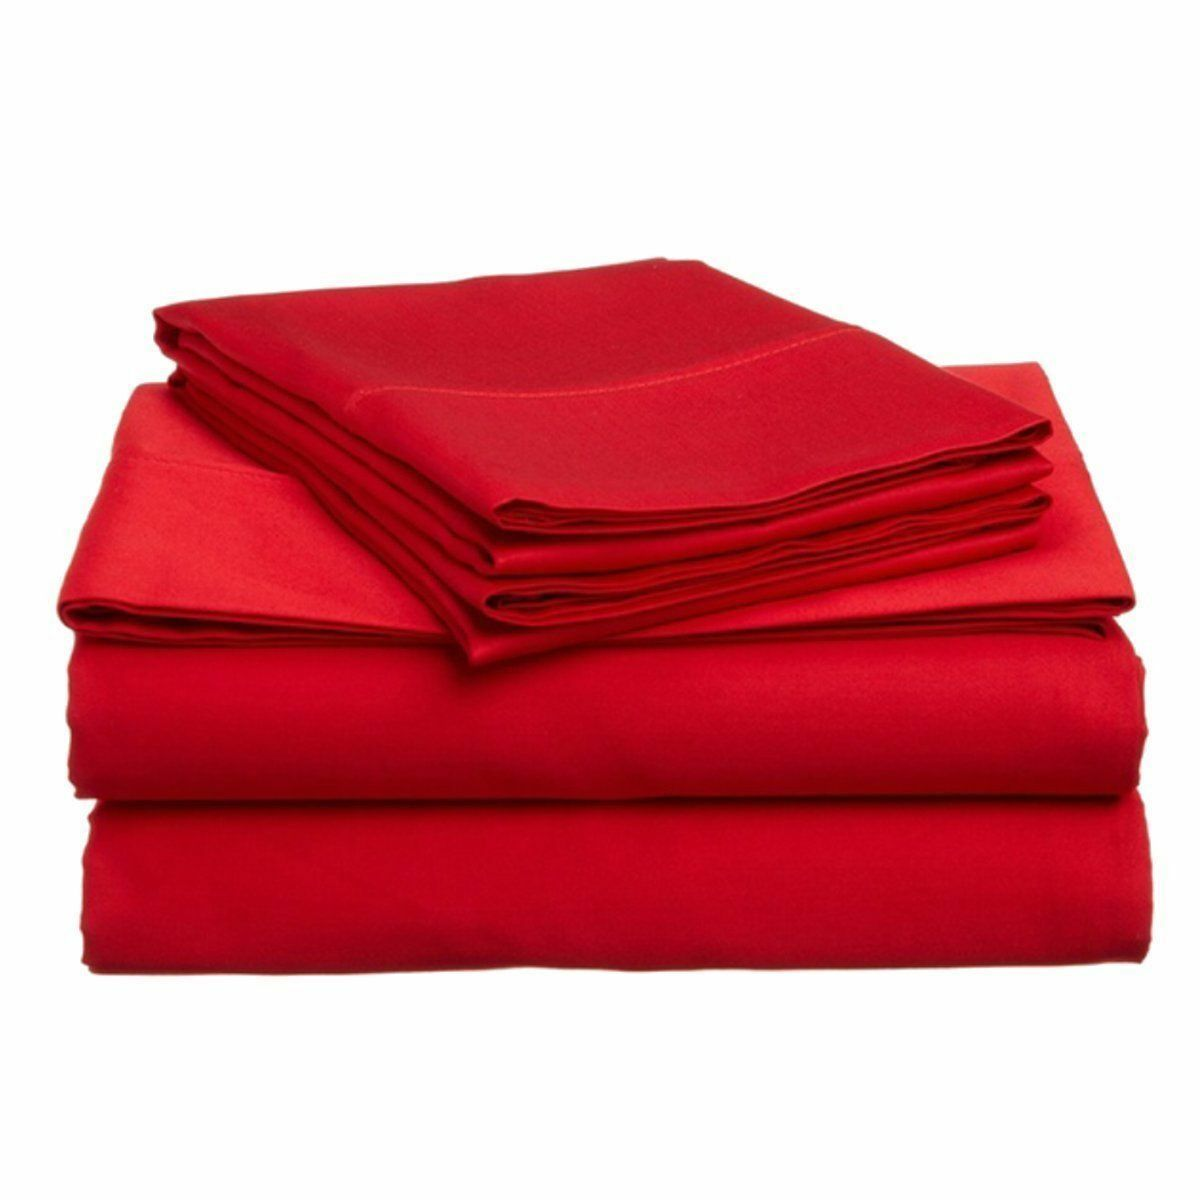 Bed Sheet Set rot Solid RV Camper & BUNK Bed All Größes 1000 Thread Count